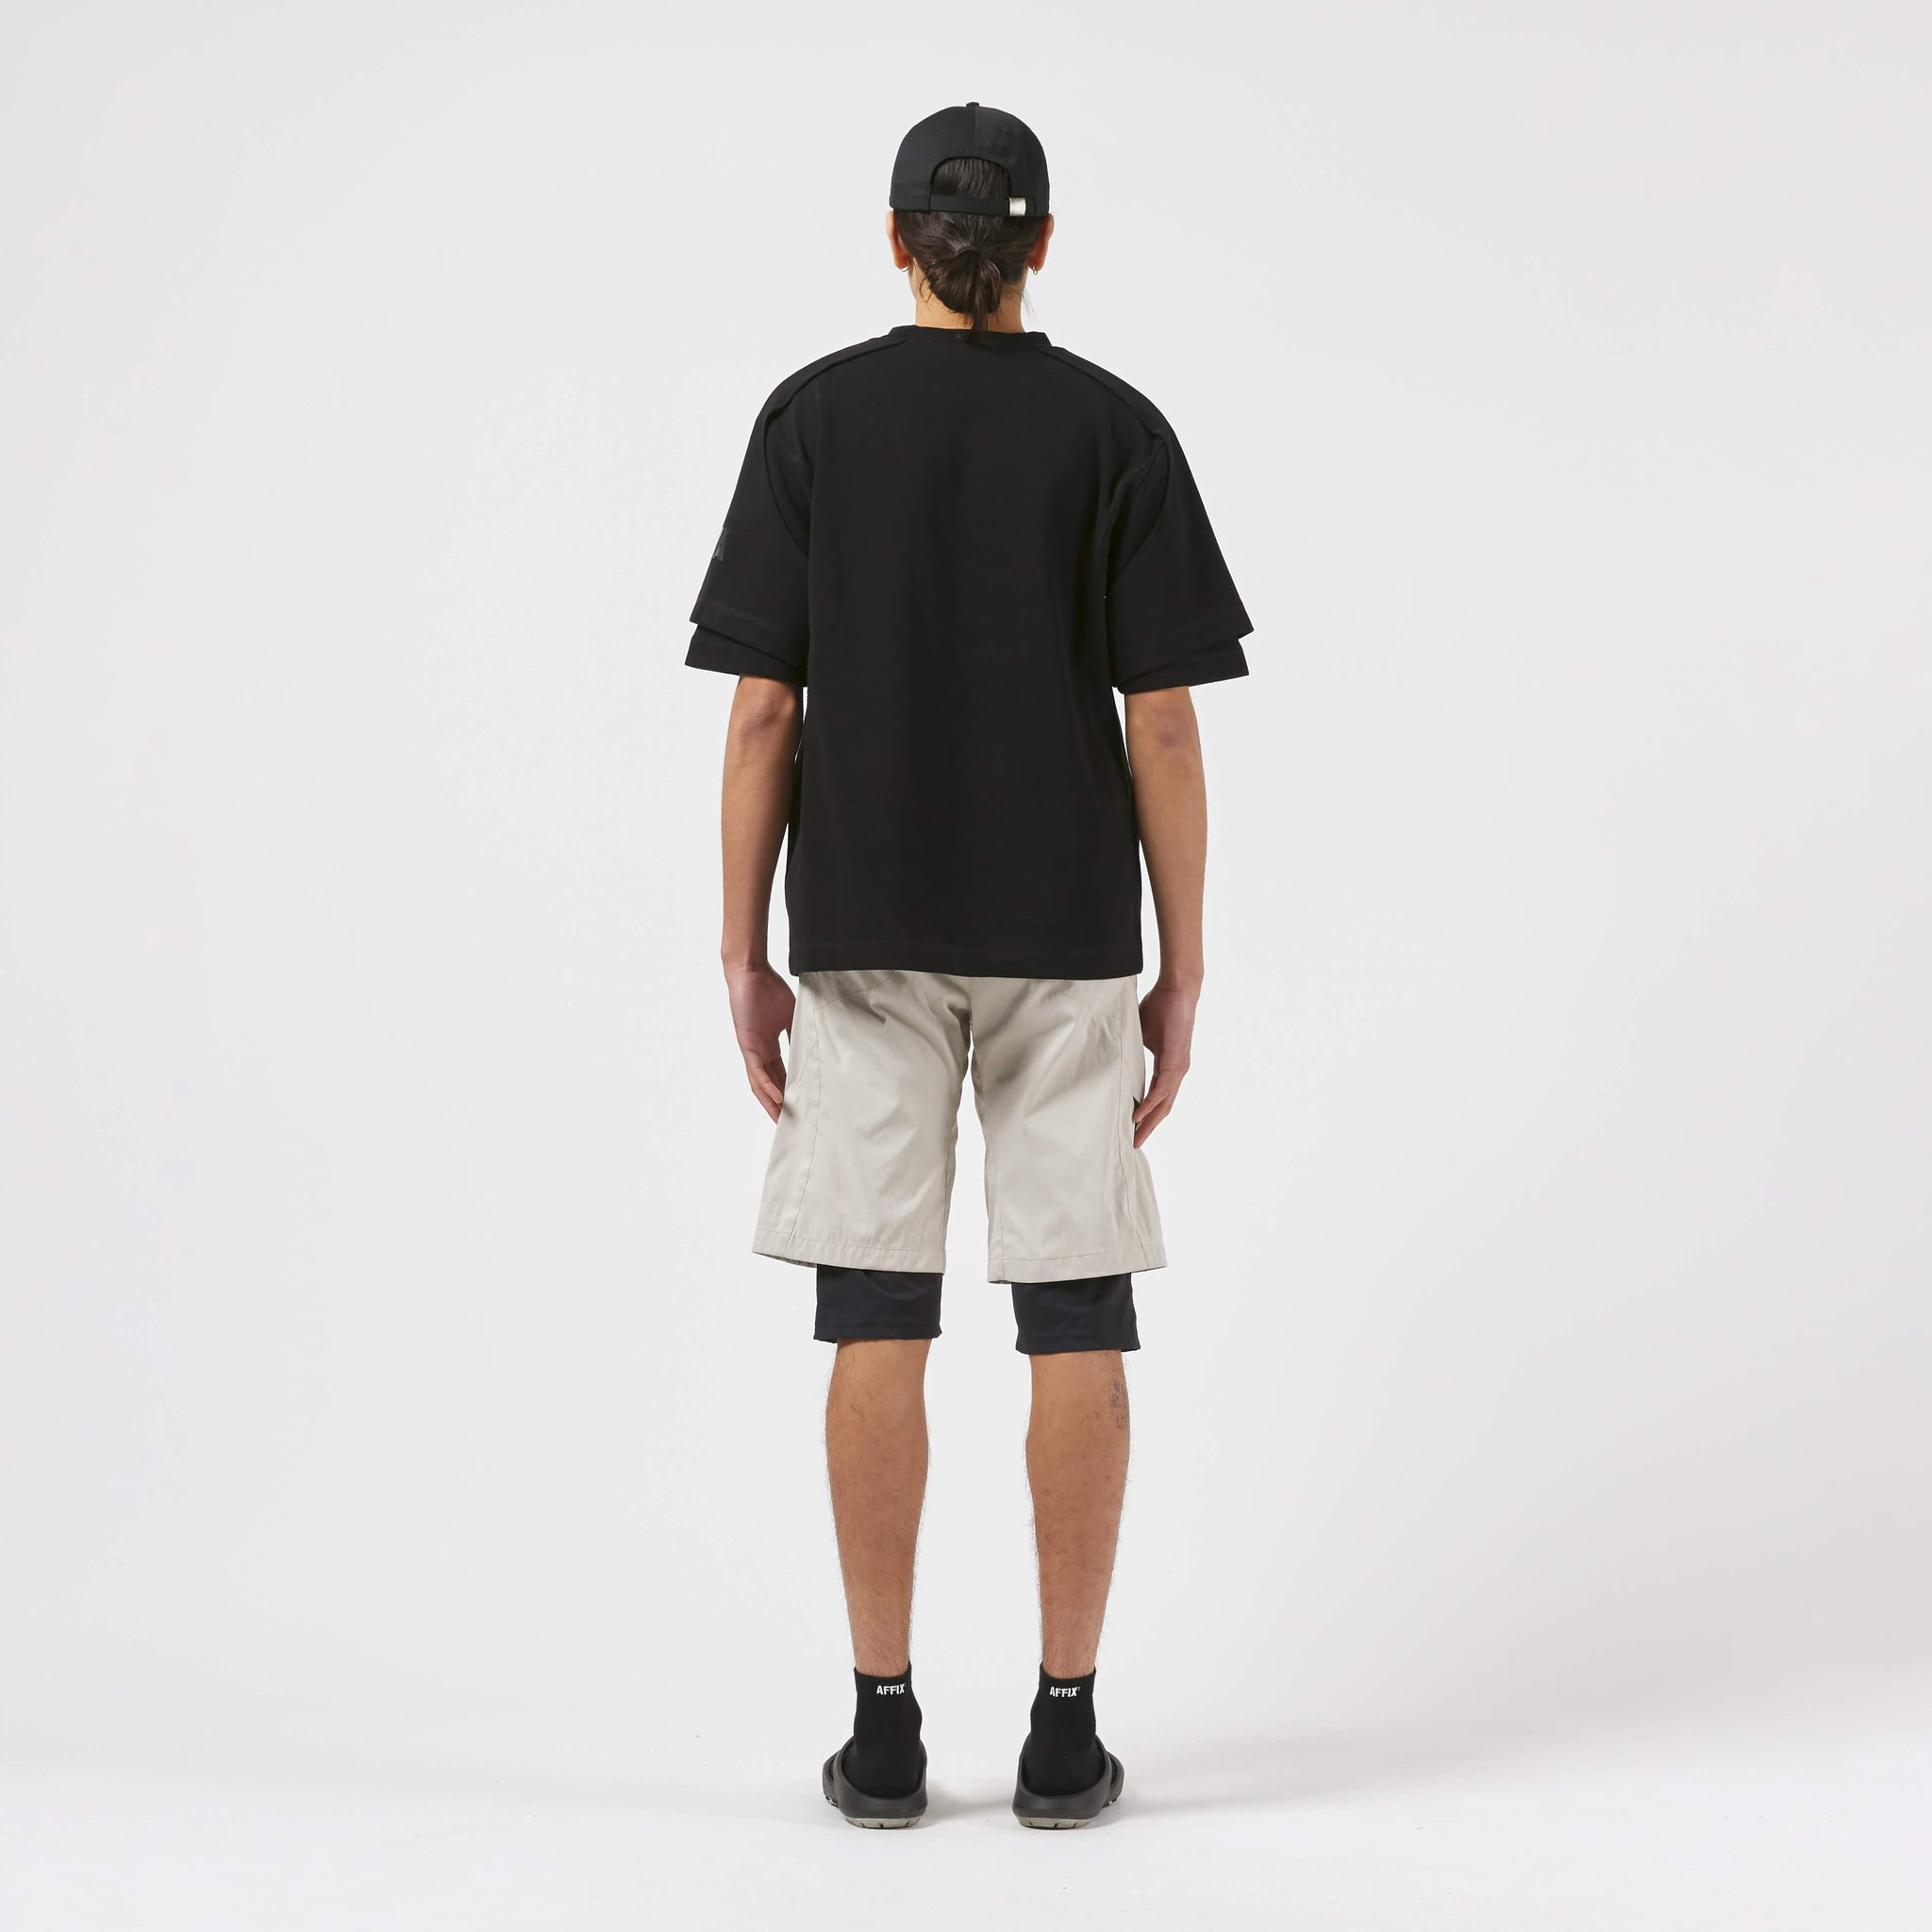 AFFX WRKS AFFIX WORKS DUAL SLEEVE T-SHIRT BLACK EXCLUSIVE